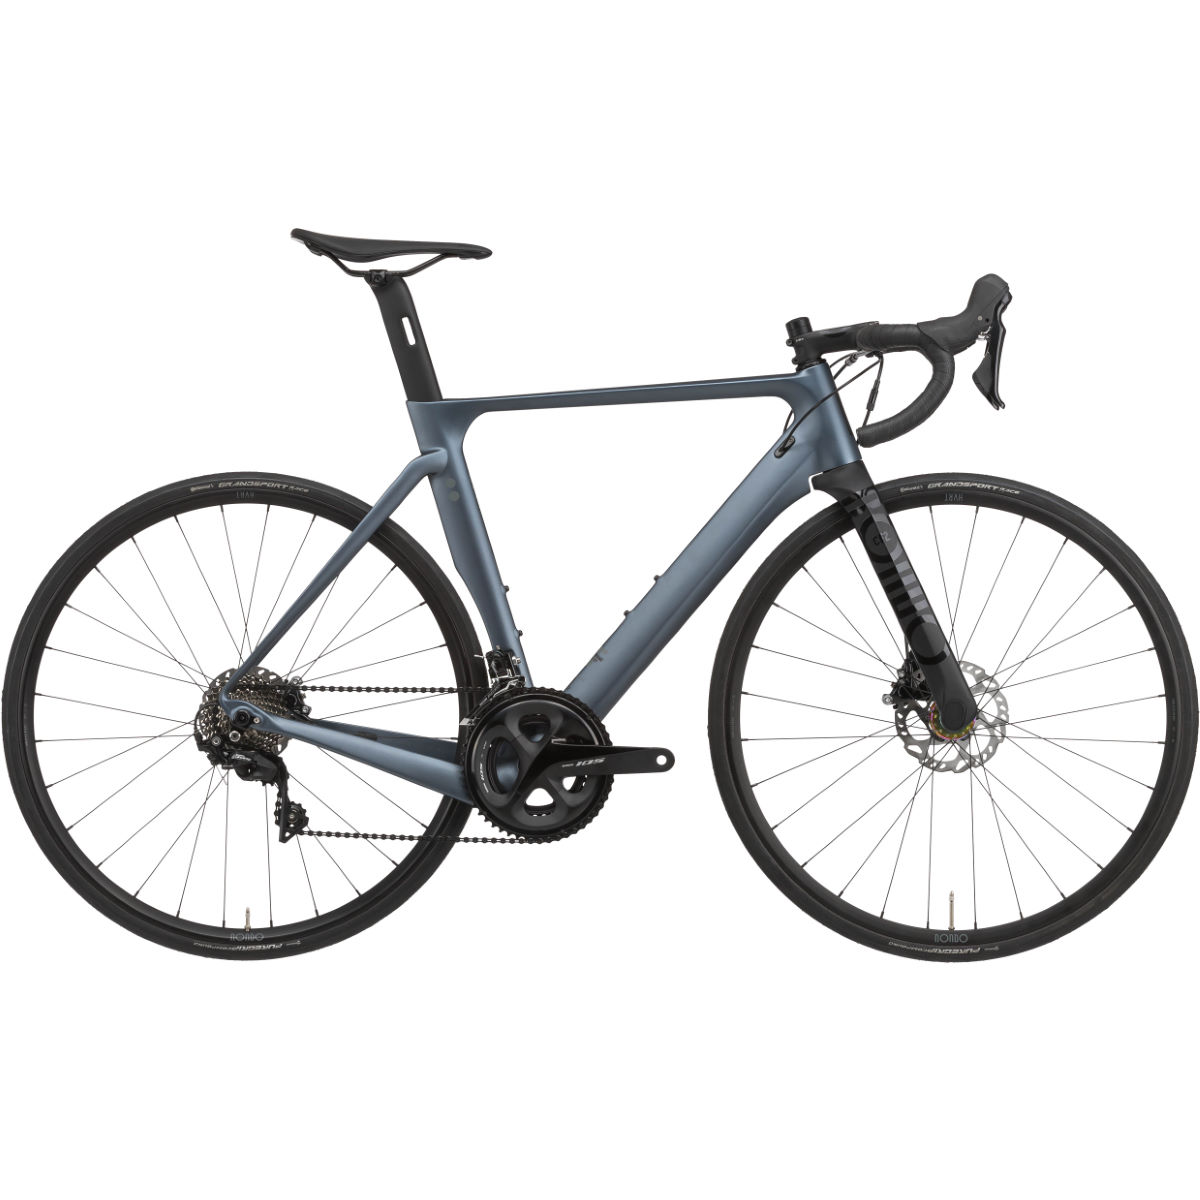 Rondo Rondo HVRT CR2 Road Bike (2020)   Road Bikes